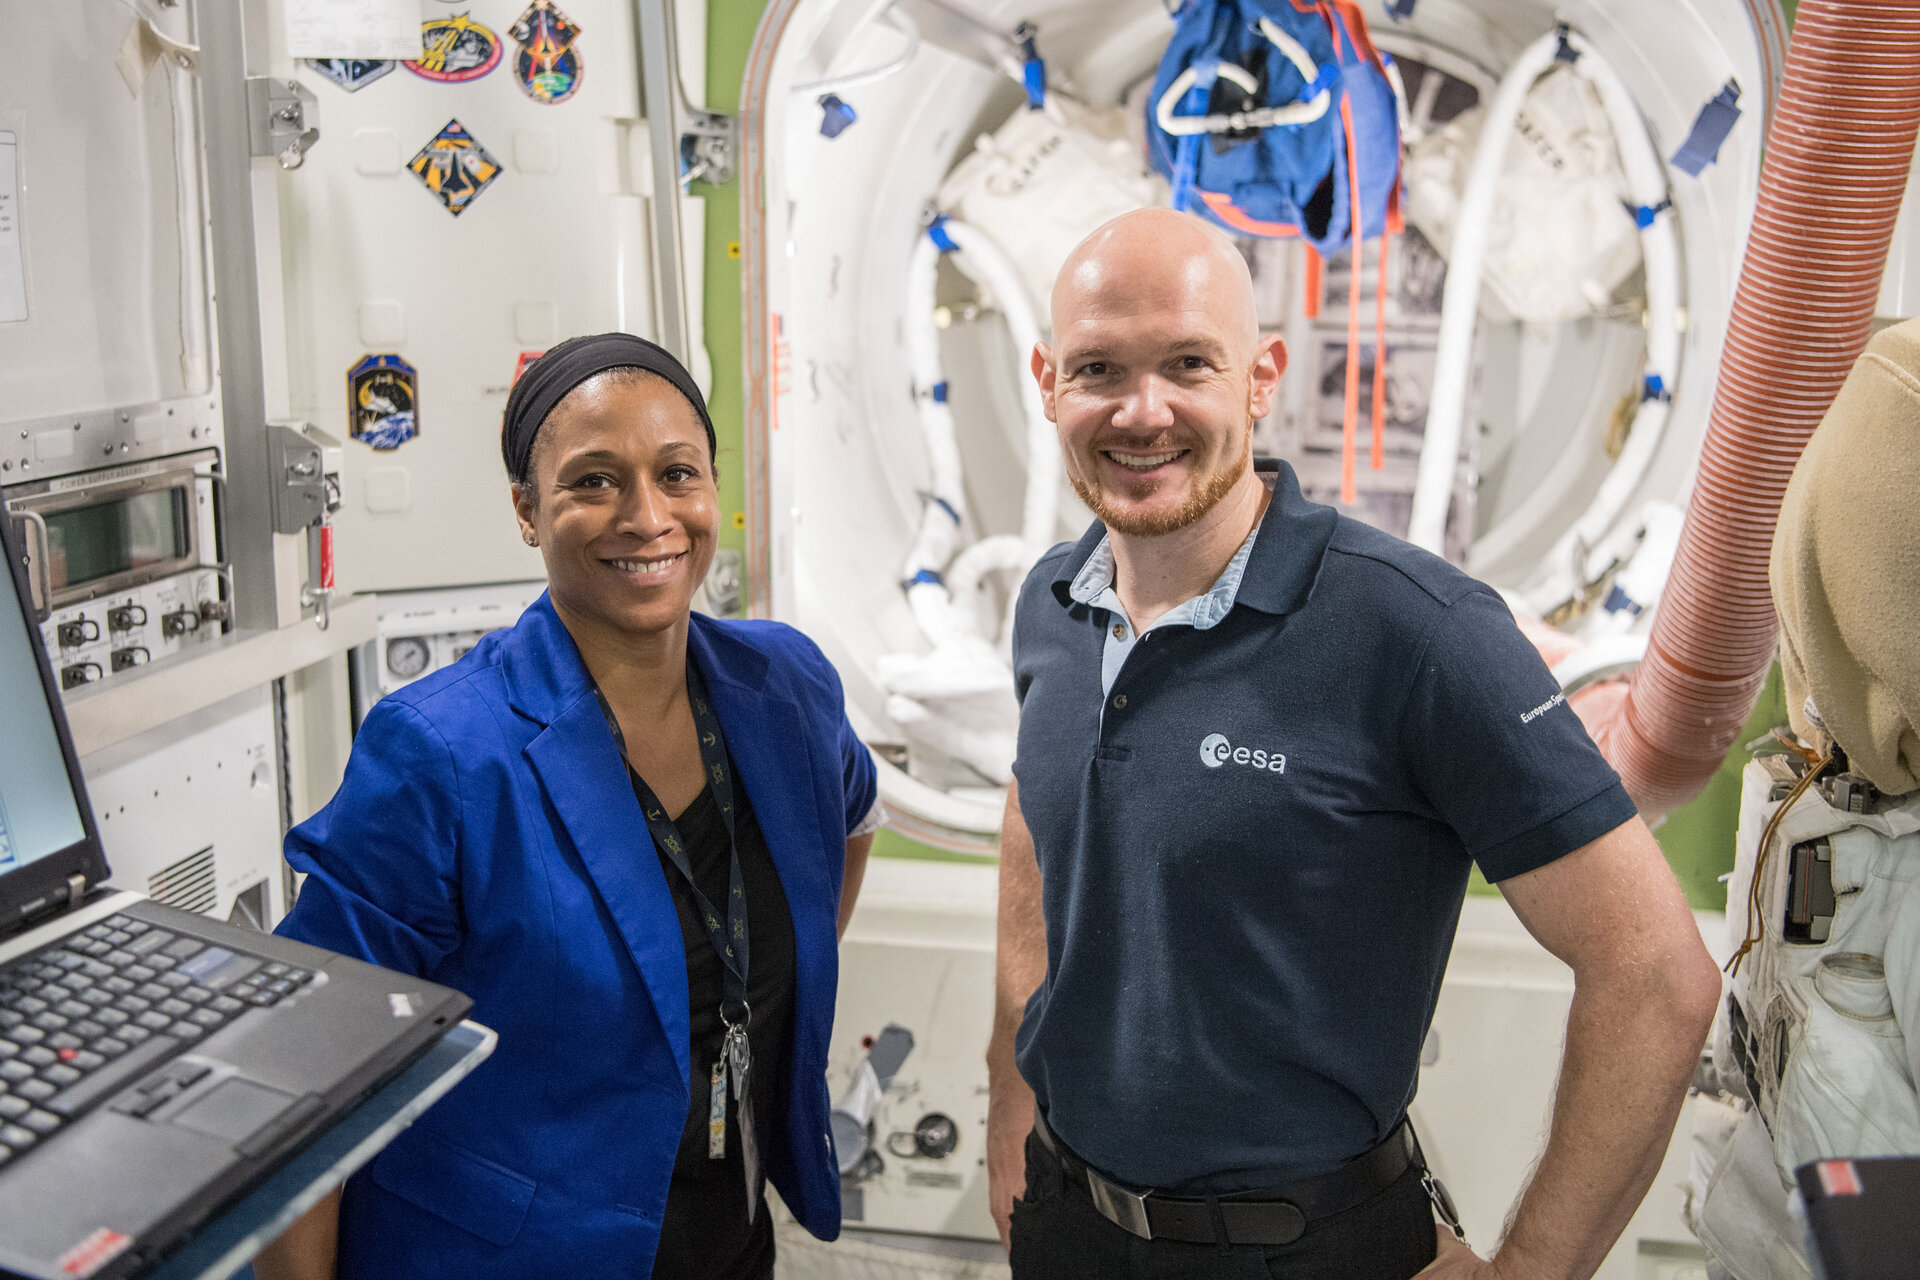 NASA-Astronautin Jeanette Epps und ESA-Astronaut Alexander Gerst im Training in Houston.